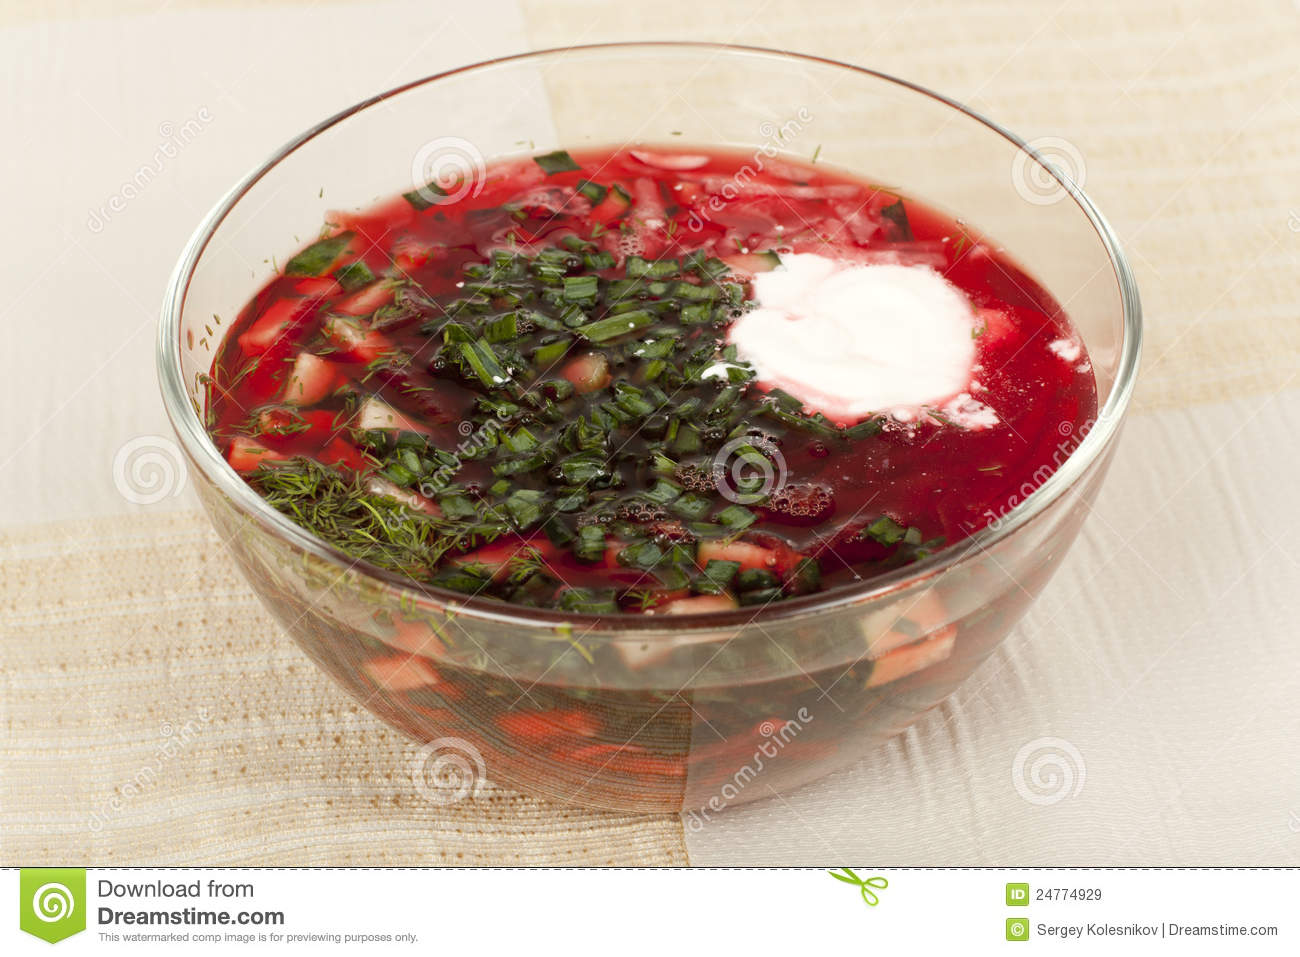 Cold Beet Soup Royalty Free Stock Images - Image: 24774929